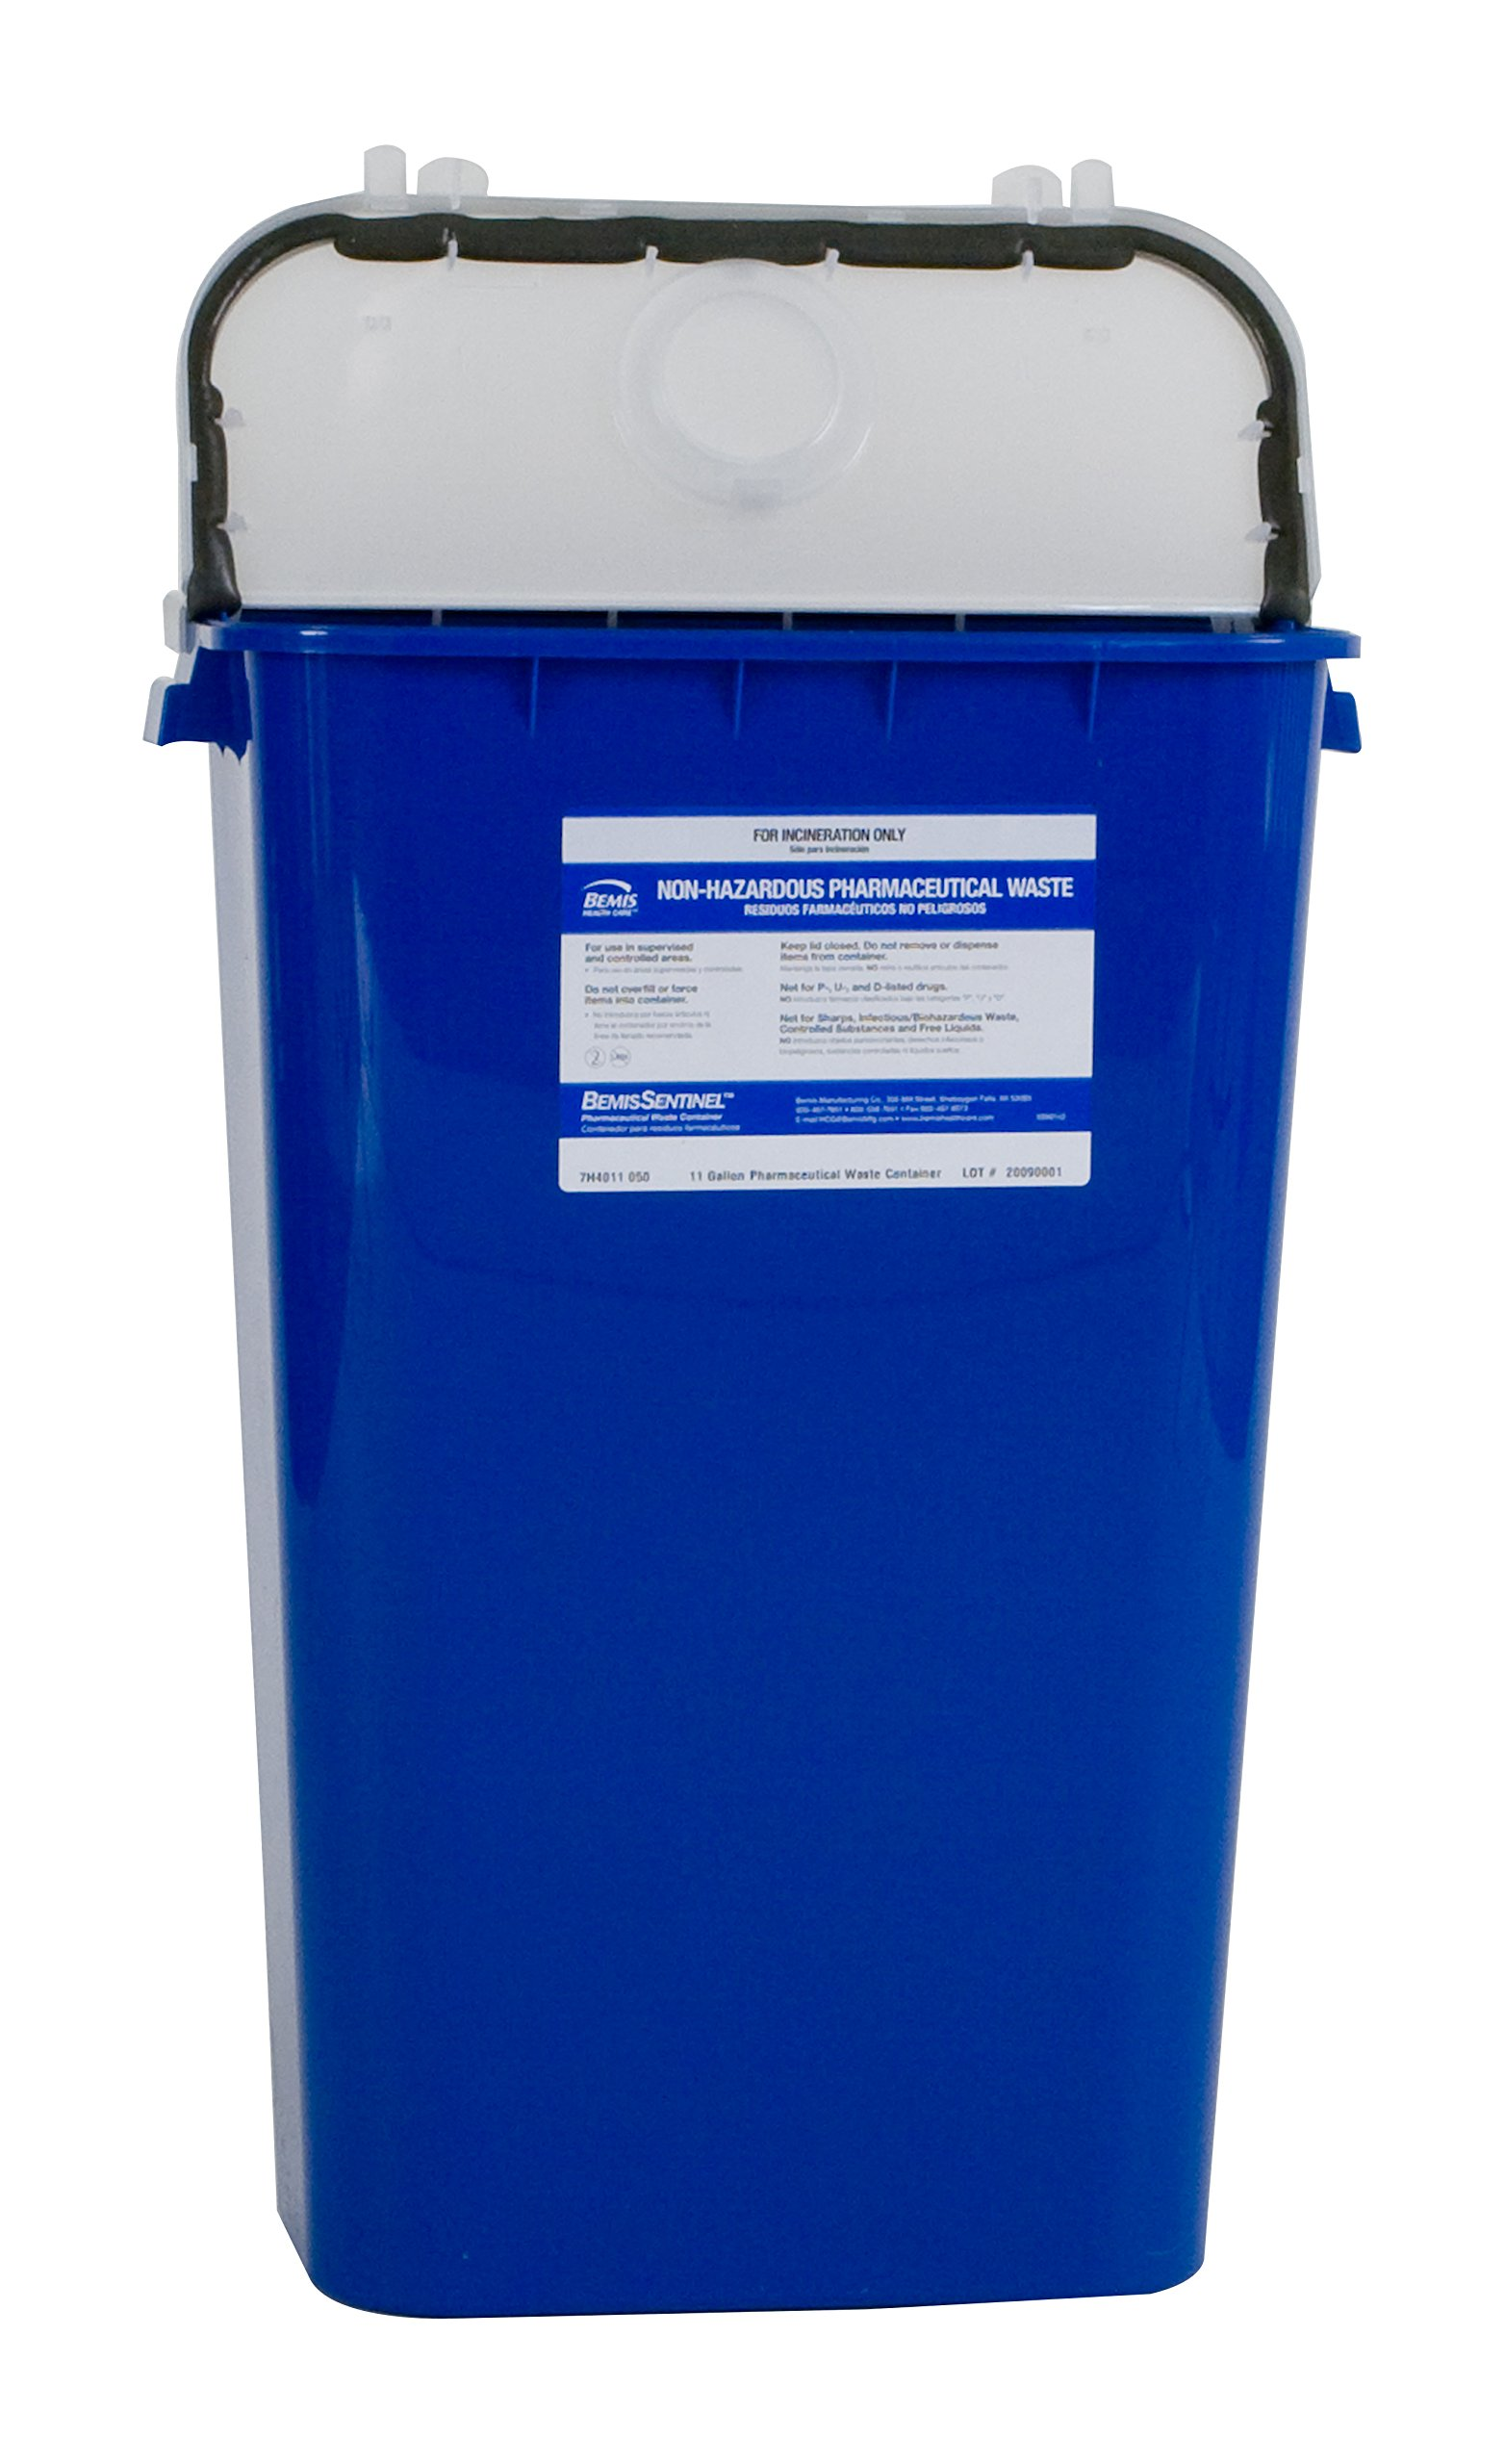 Bemis Healthcare 4011050-6 11 gal Pharmaceutical Waste Container, Blue (Pack of 6)